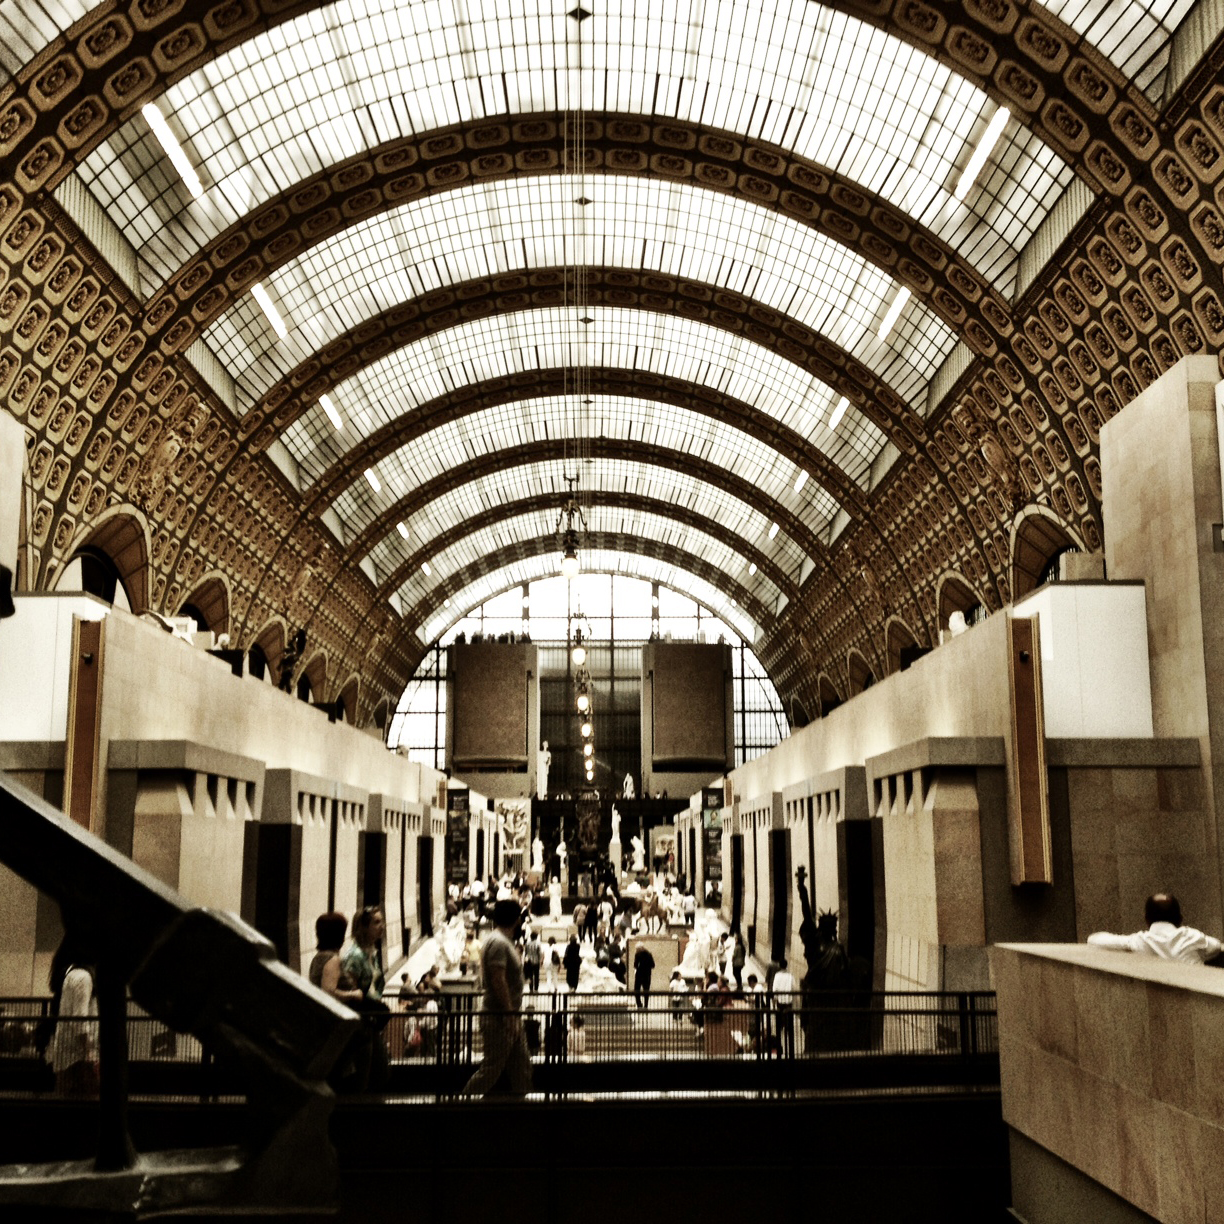 The D'Orsay is a beautiful converted train station.